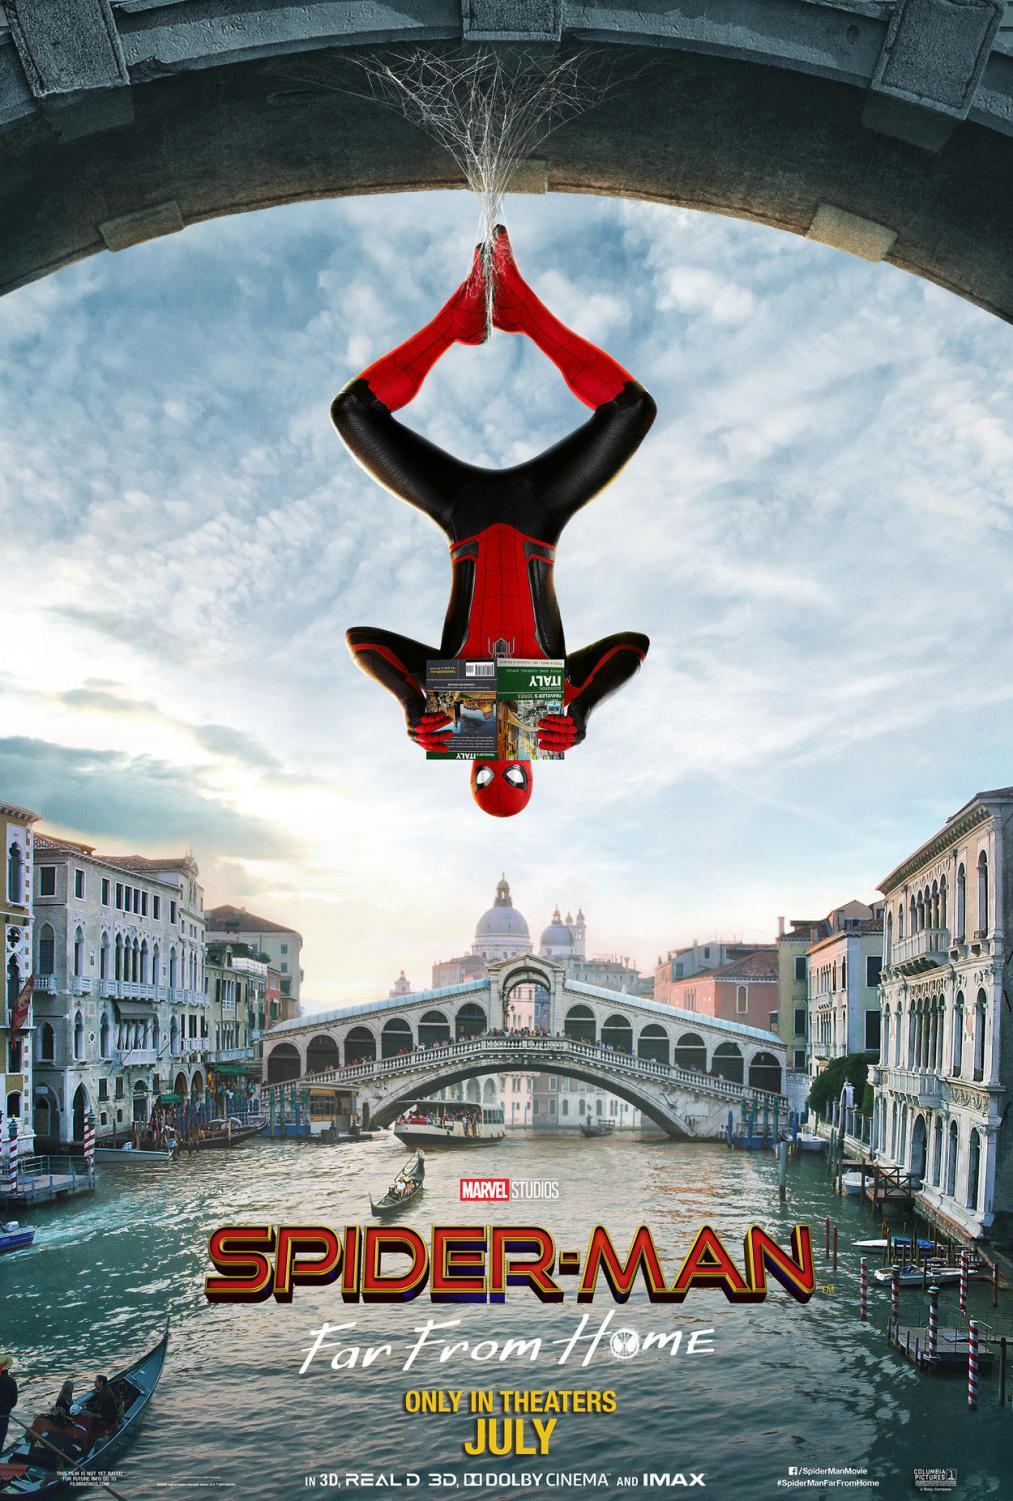 'Spider-Man: Far From Home' begins new successful era.